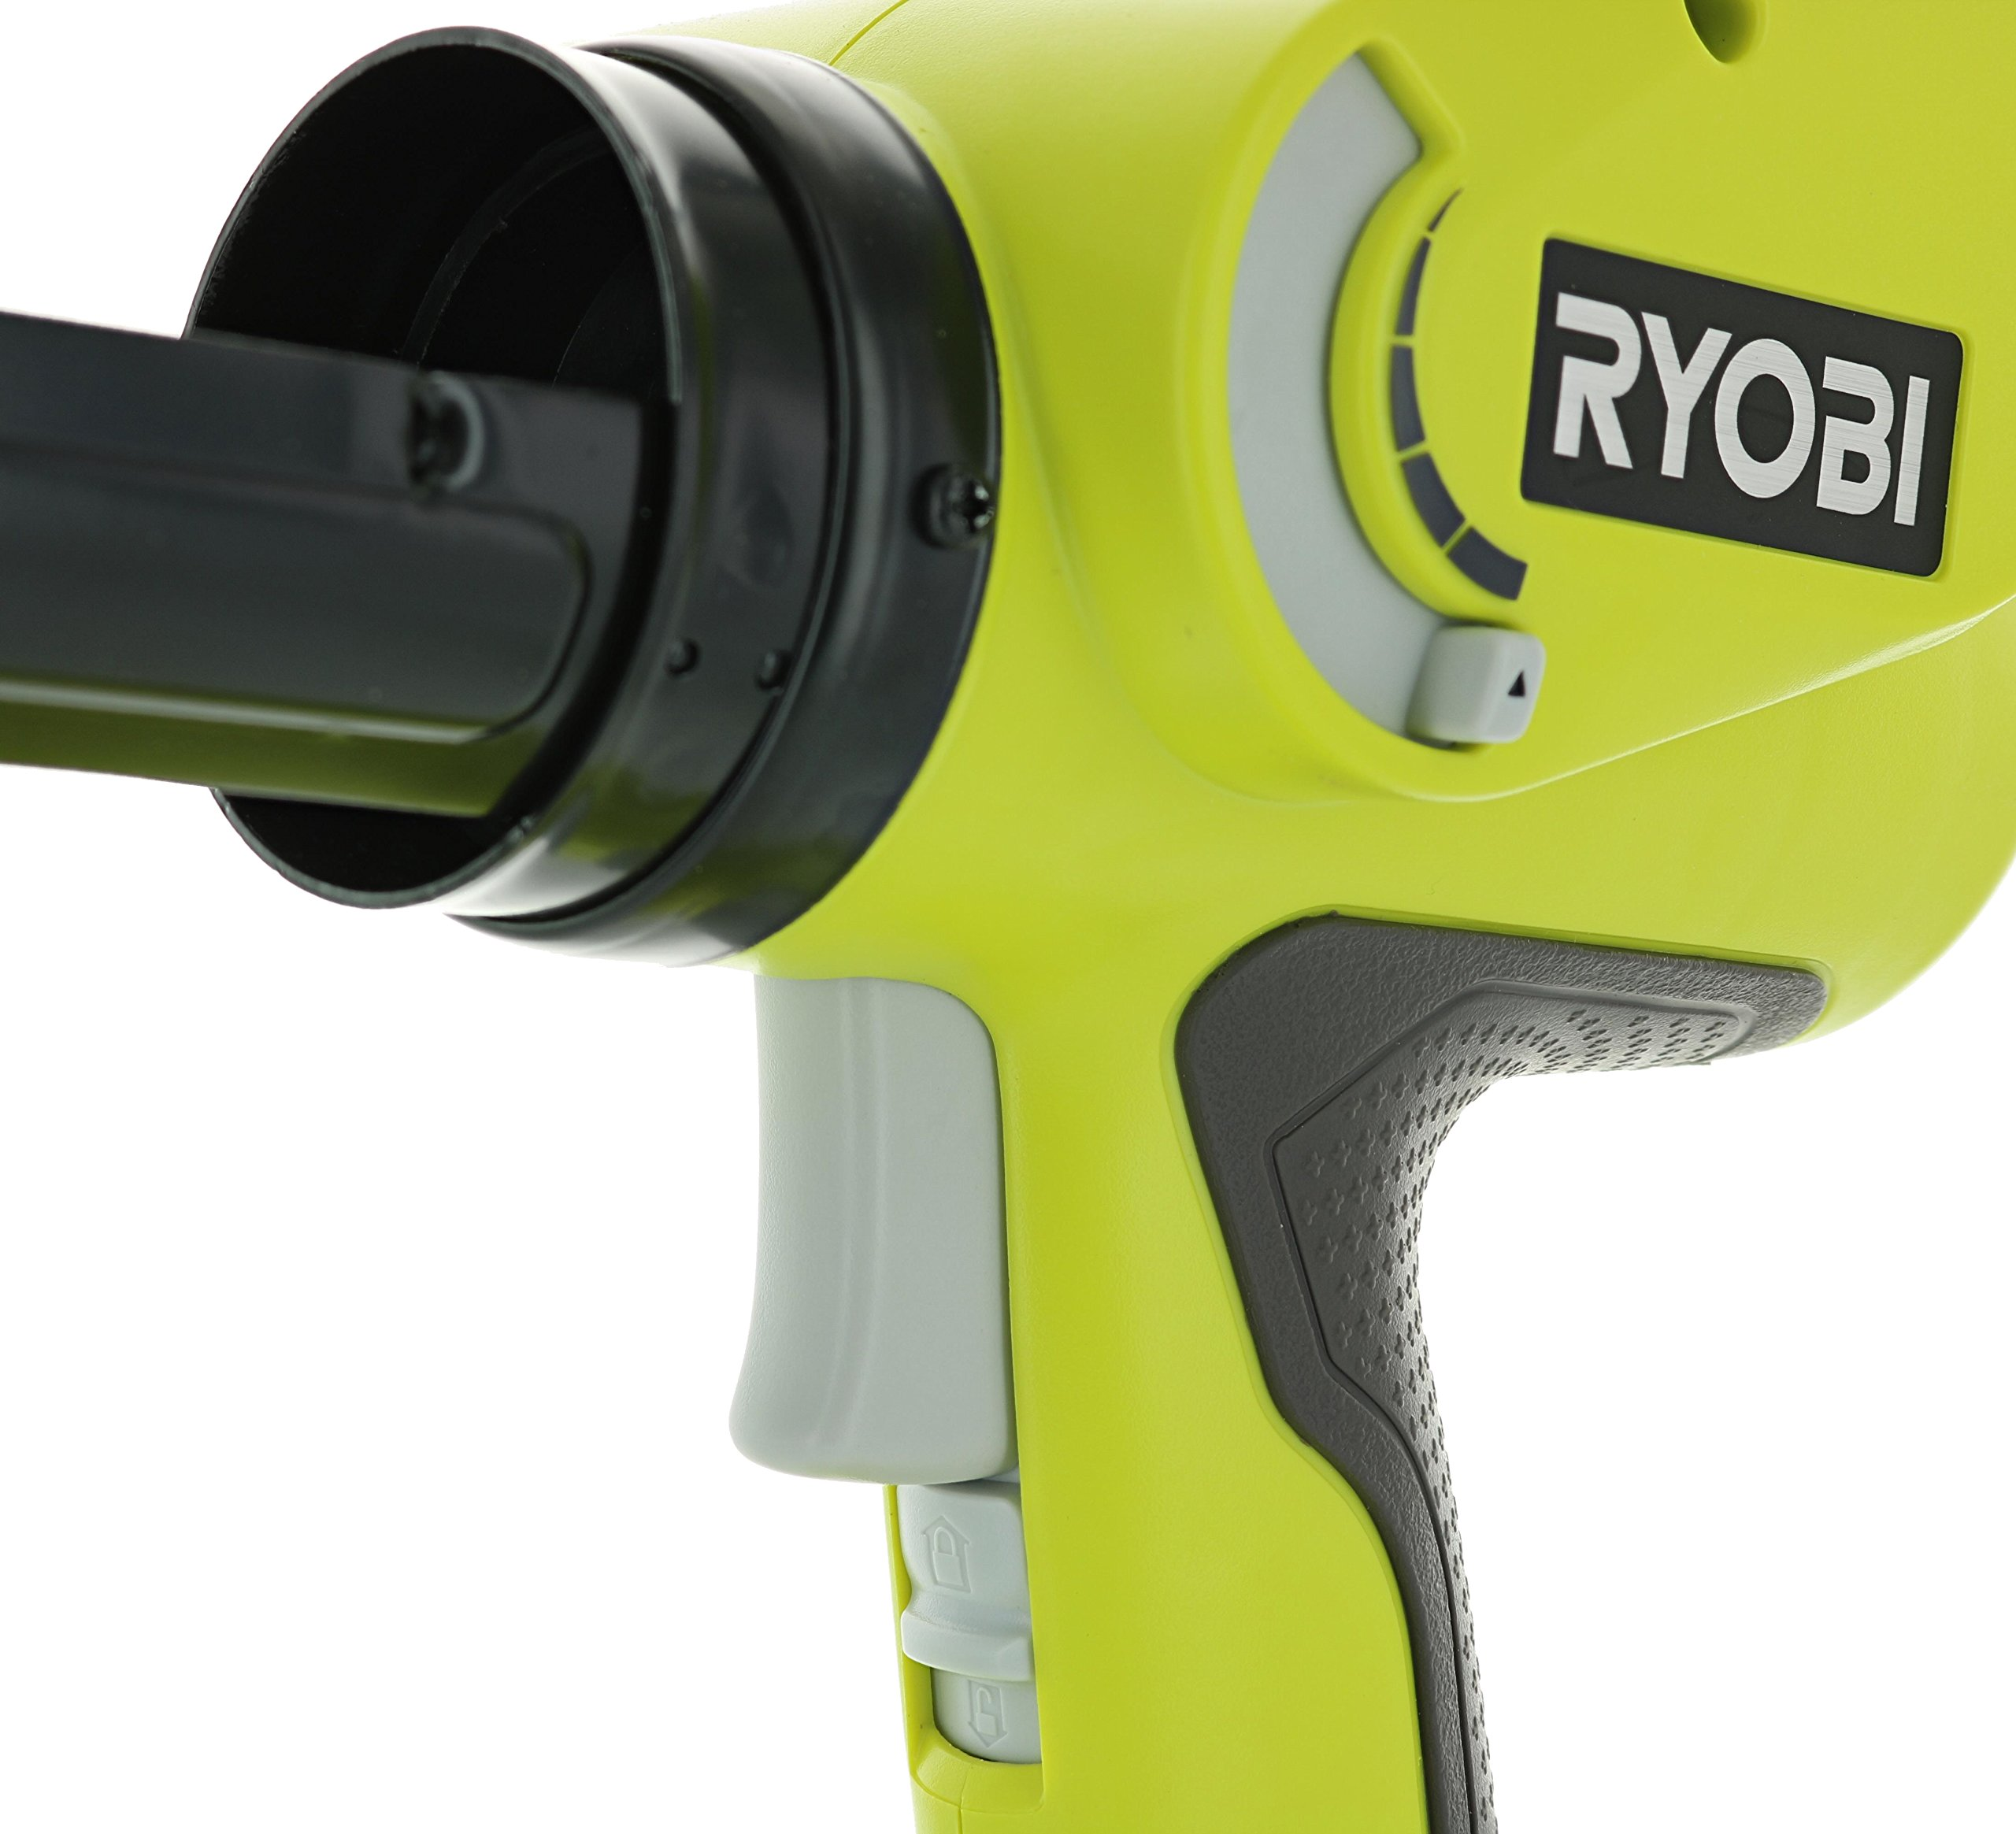 Ryobi P310G 18v Pistol Grip Variable Discharge Rate Power Caulk and Adhesive Gun (Tool Only, Holds 10 Ounce Carriage) by Ryobi (Image #4)